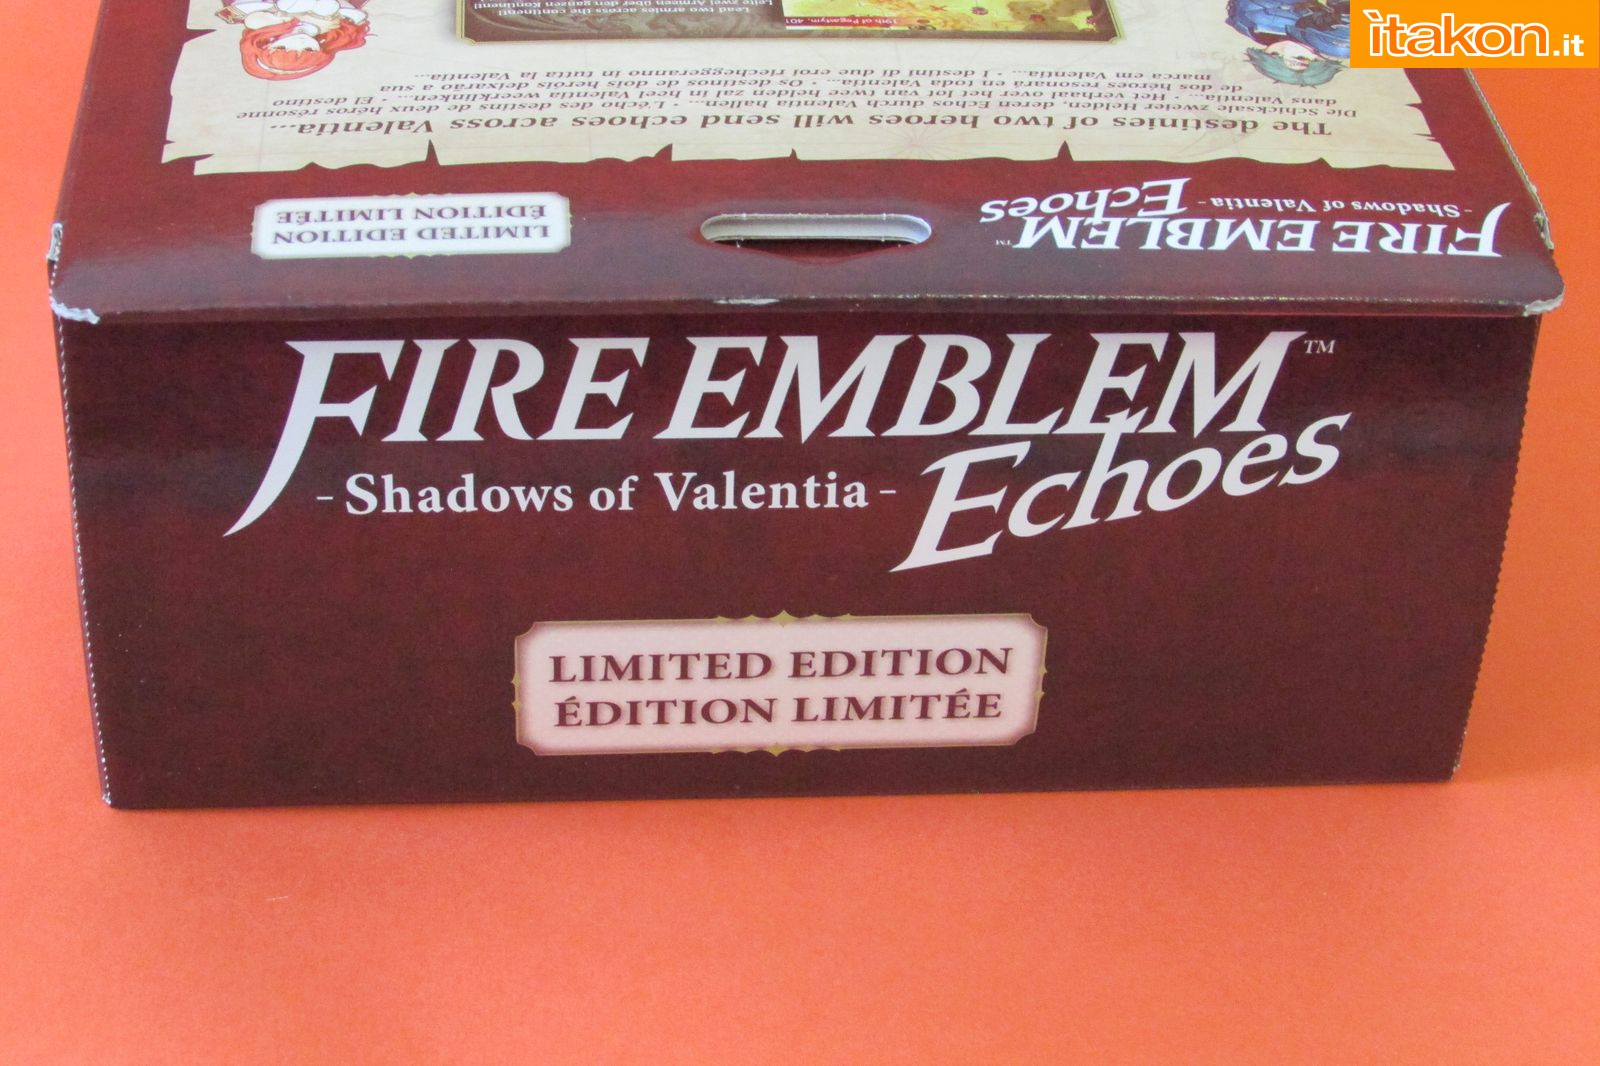 Link a Fire Emblem Echoes Shadow of Valentia Limited Edition Itakon.it 19